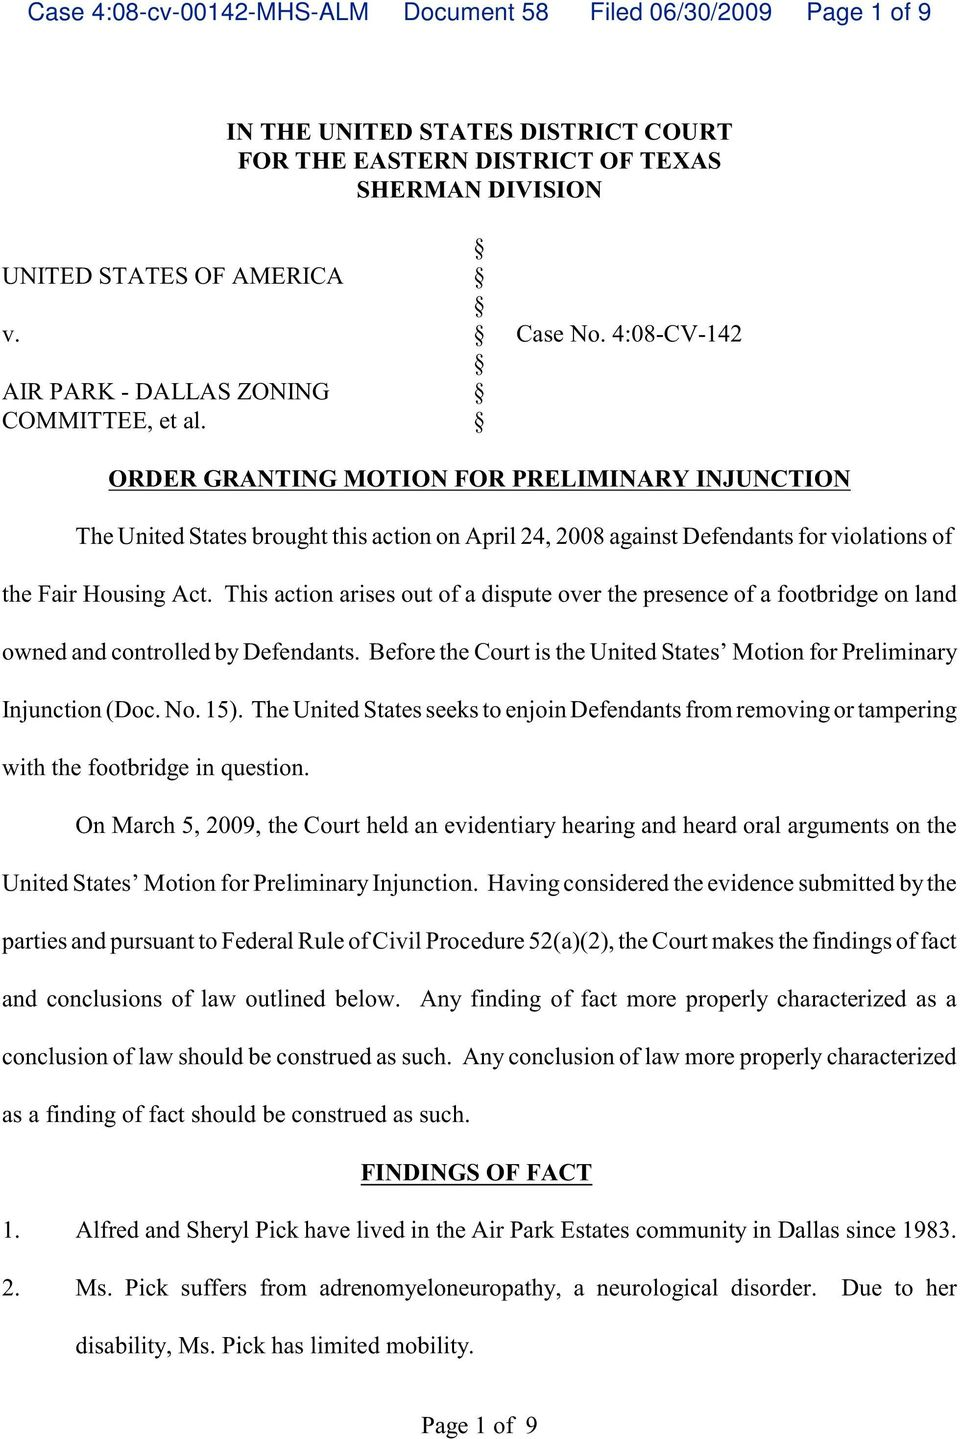 ORDER GRANTING MOTION FOR PRELIMINARY INJUNCTION The United States brought this action on April 24, 2008 against Defendants for violations of the Fair Housing Act.